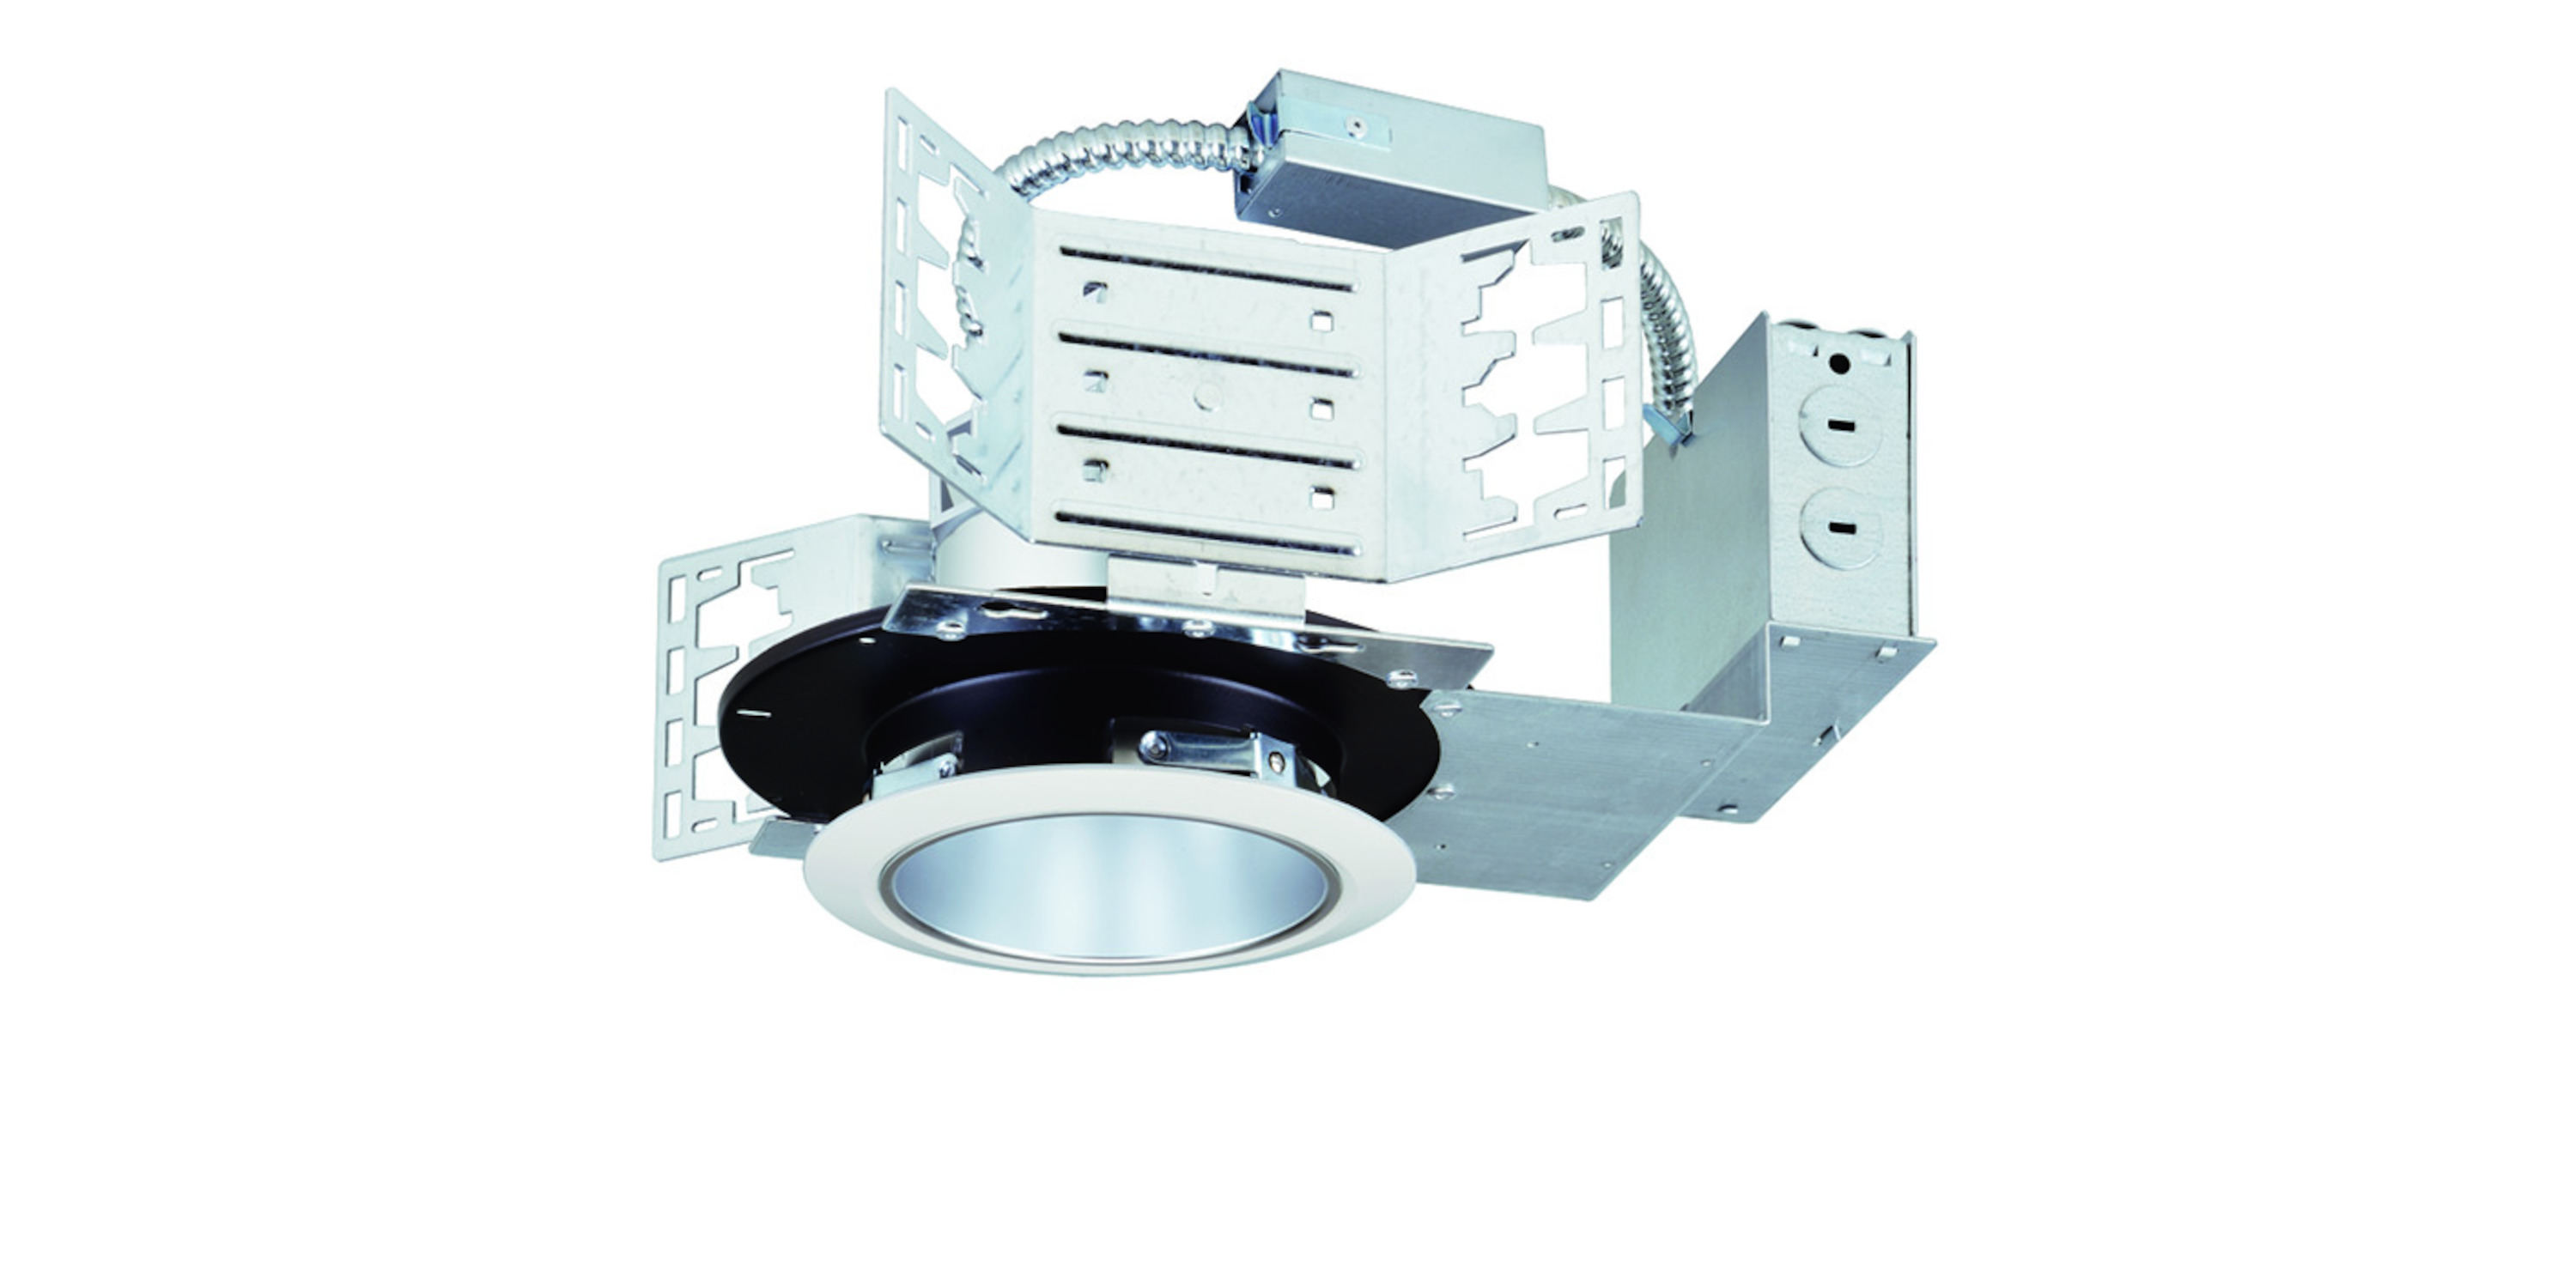 Led 4 Commercial Recessed Architectural Downlight 14w